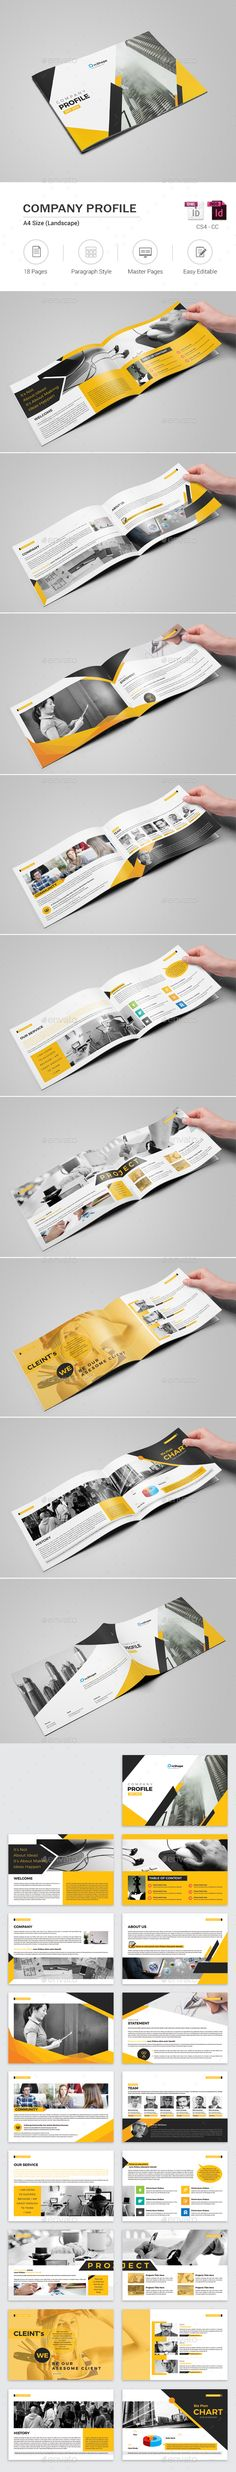 Company Profile Company profile, Corporate brochure and Brochure - company profile templates